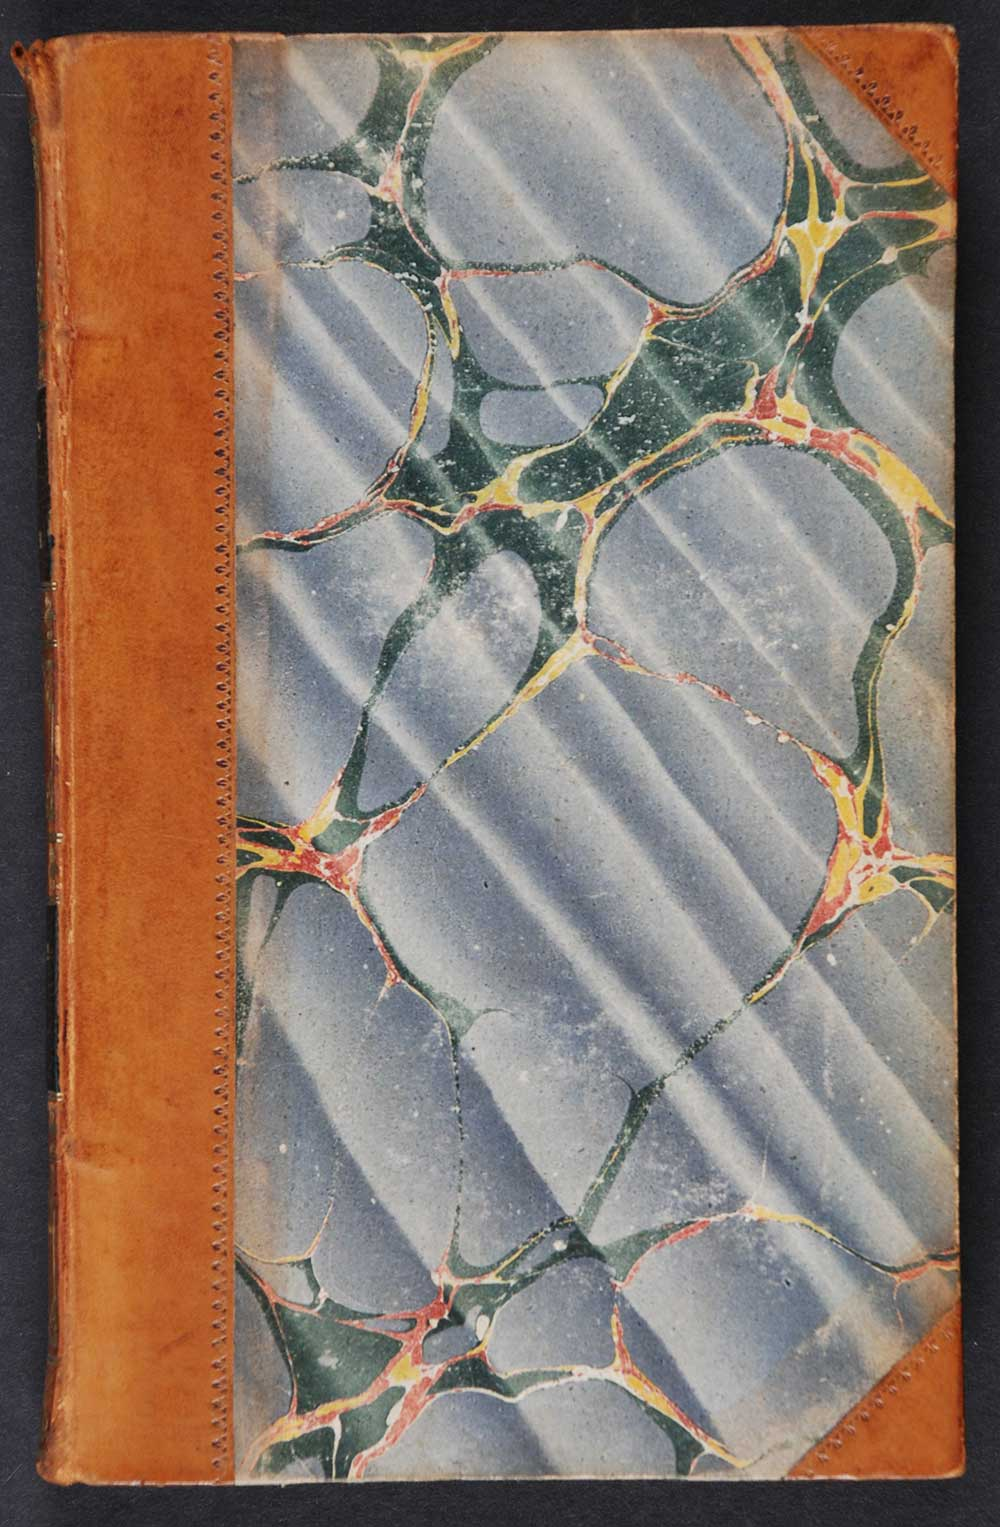 [Sir Walter Scott]. <em>Chronicles of the Canongate: second series.</em> [1st edition]. Edinburgh: Printed for Cadell and Co., Edinburgh; and Simpkin and Marshall, London, 1828. Two volumes; Vol. 2 displayed.